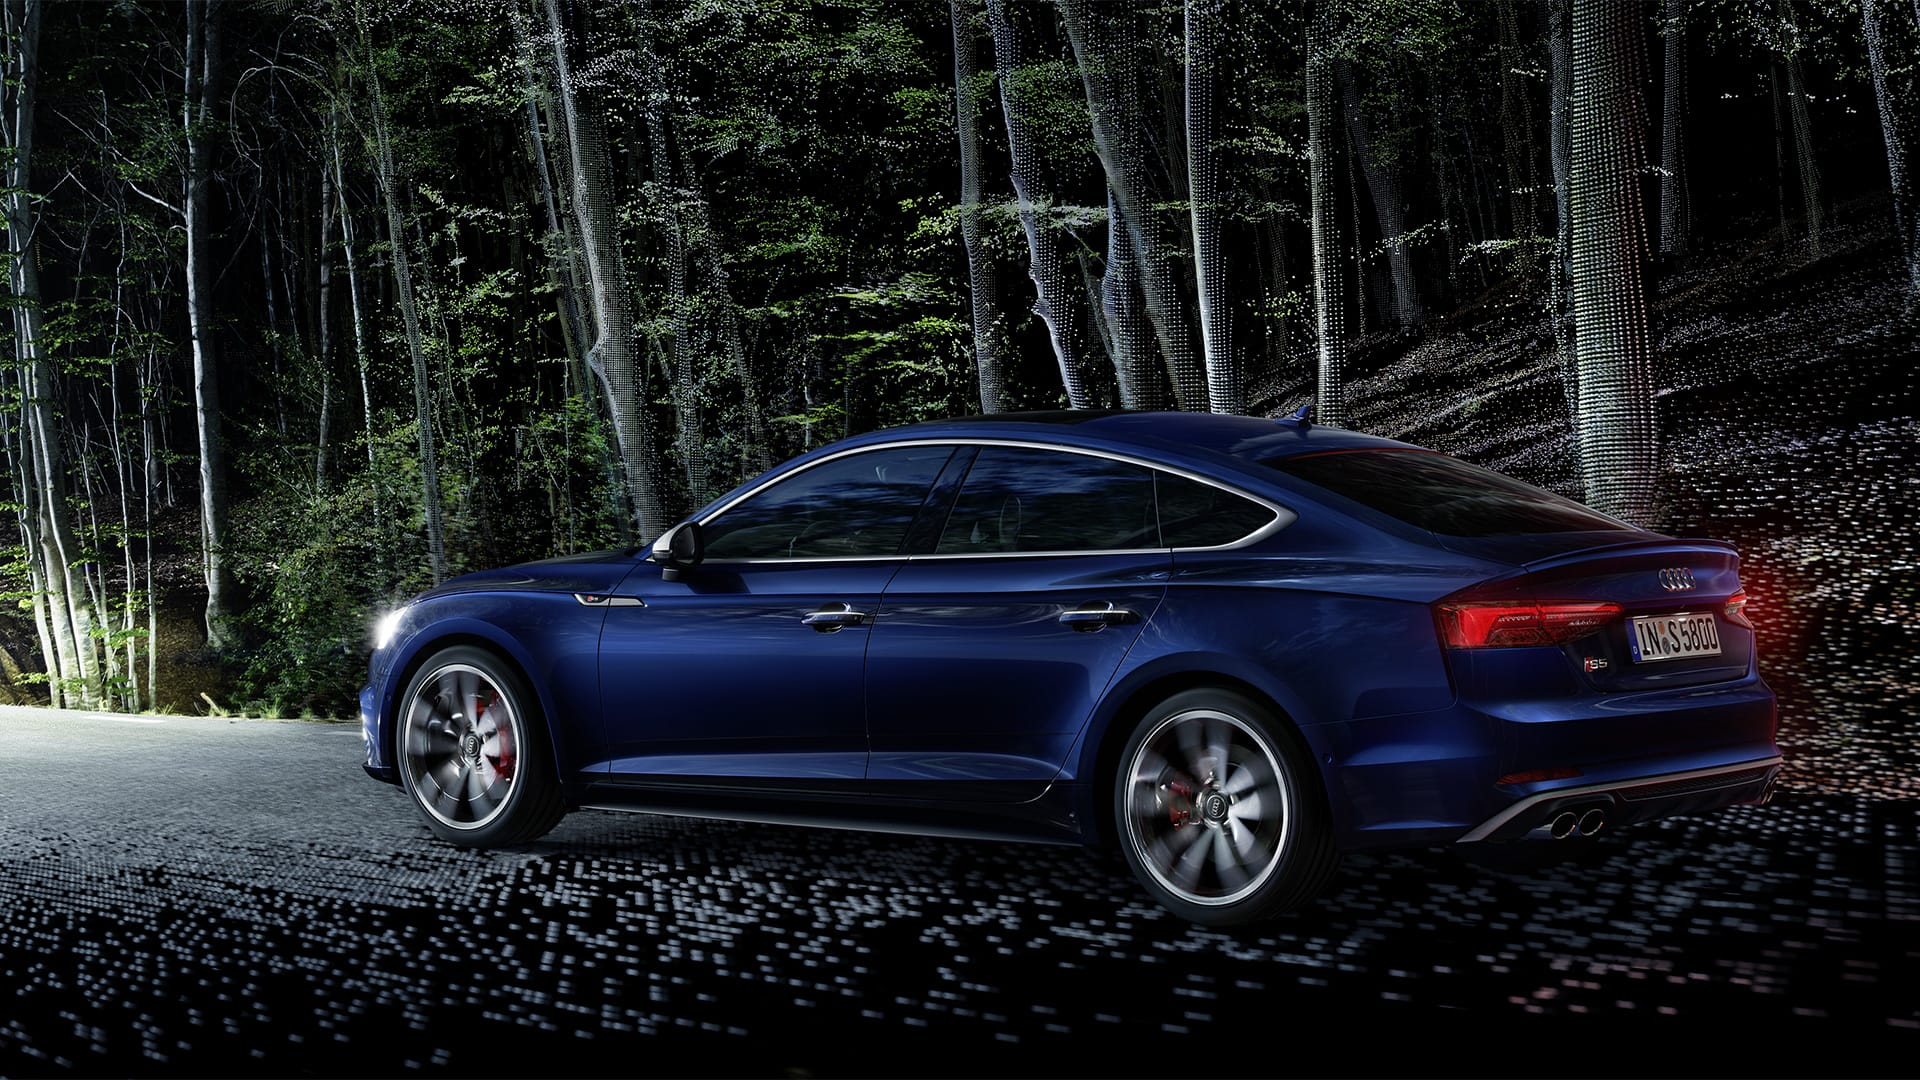 The New S5 Sportback Gt A5 Gt Audi New Zealand